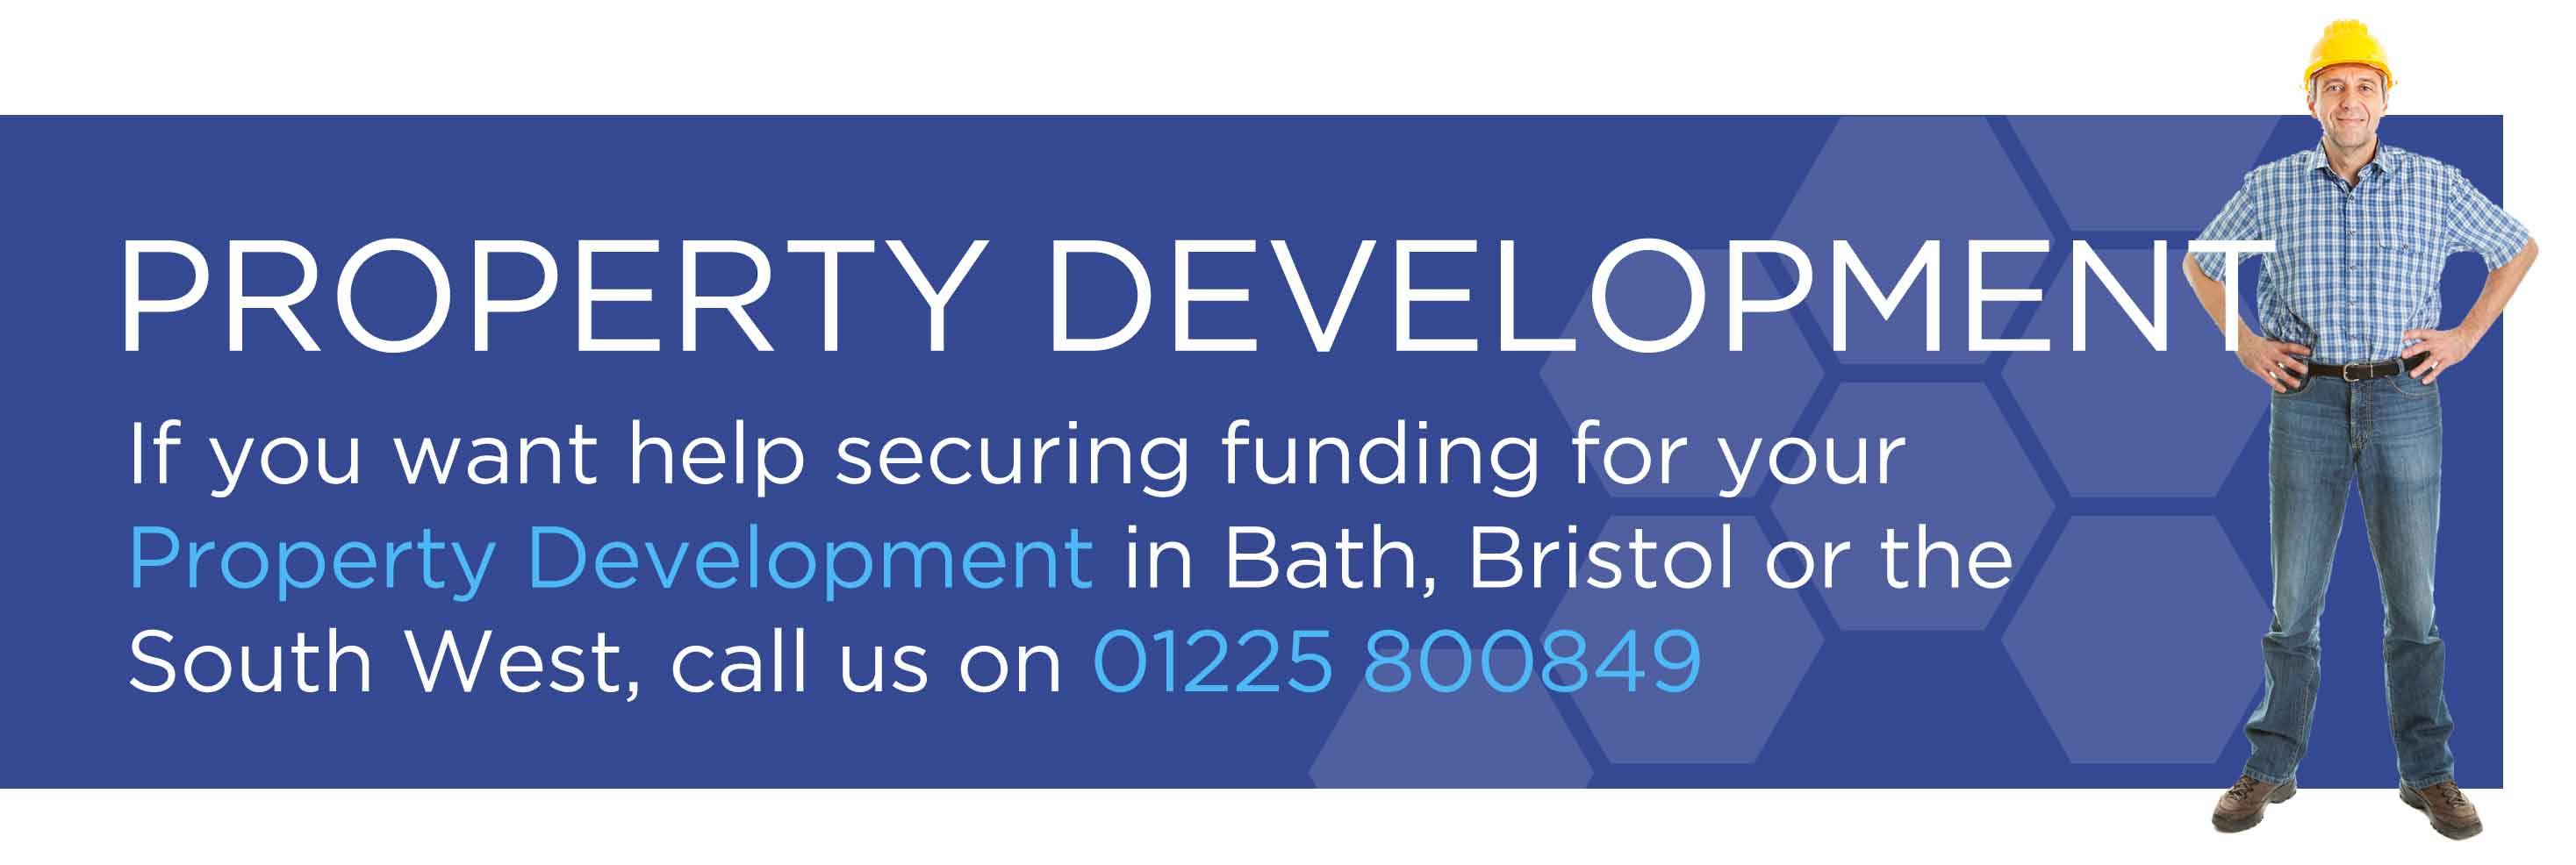 property development bath and bristol